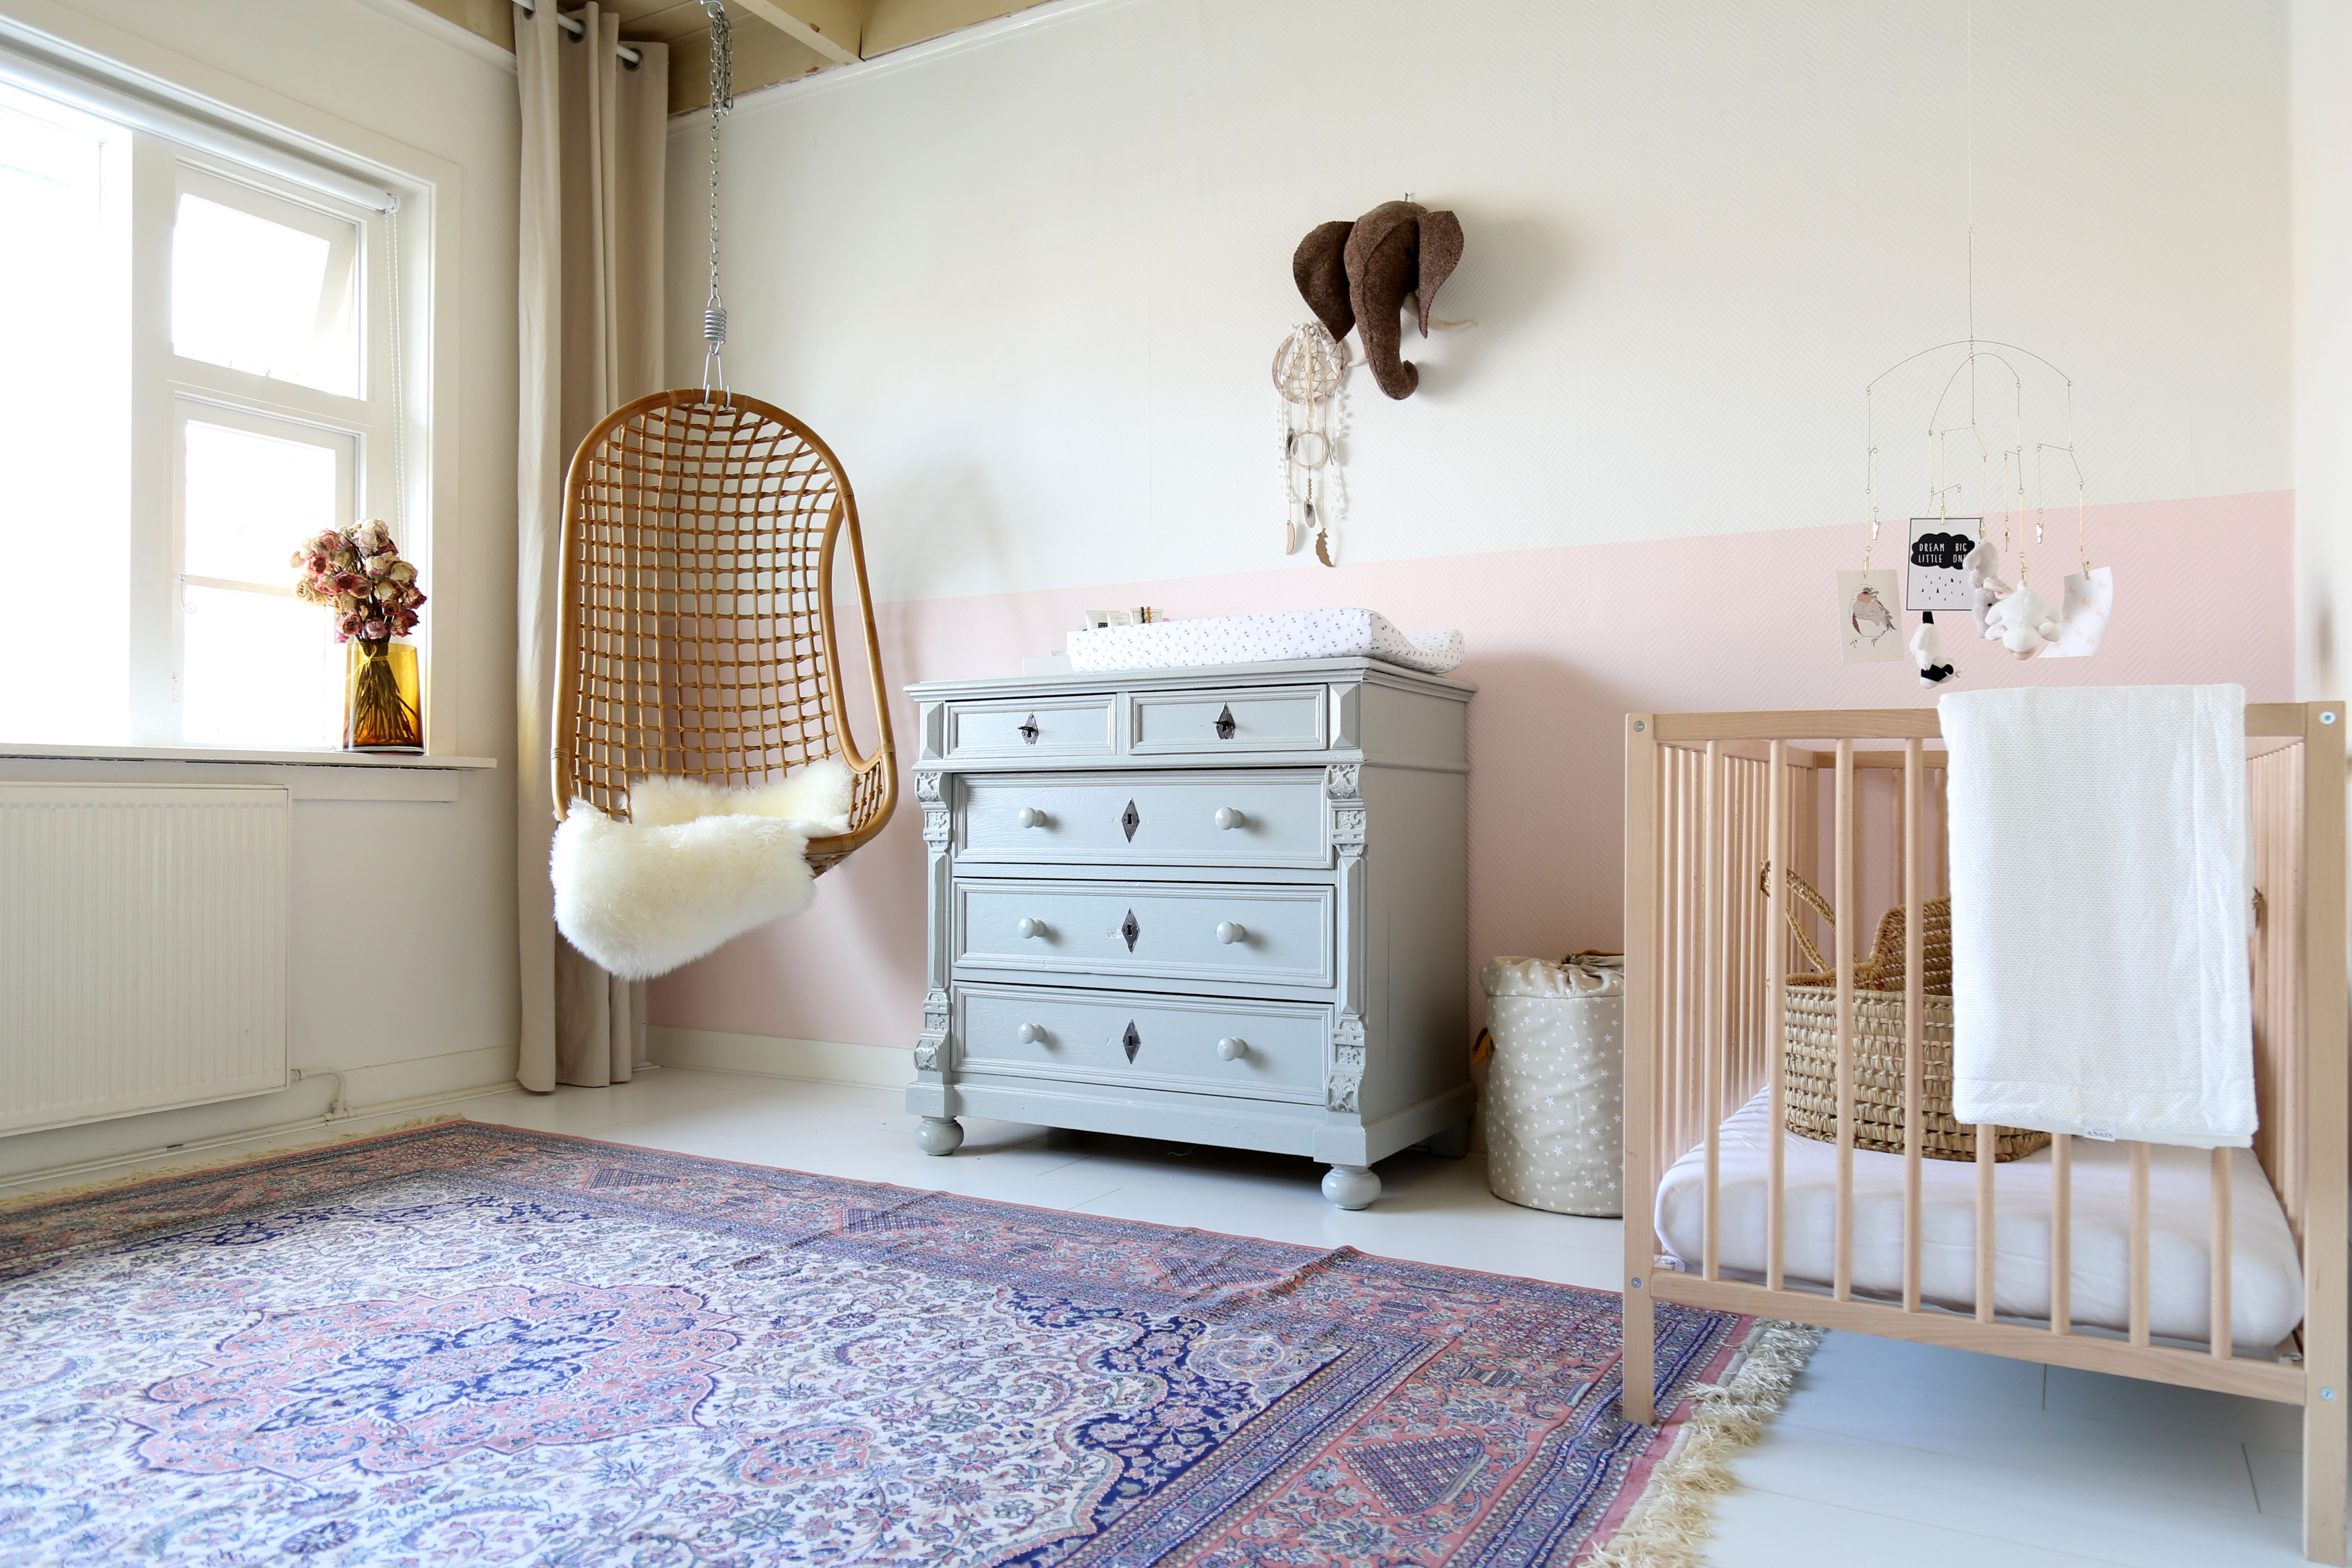 Mia's room featured on The Baby Project